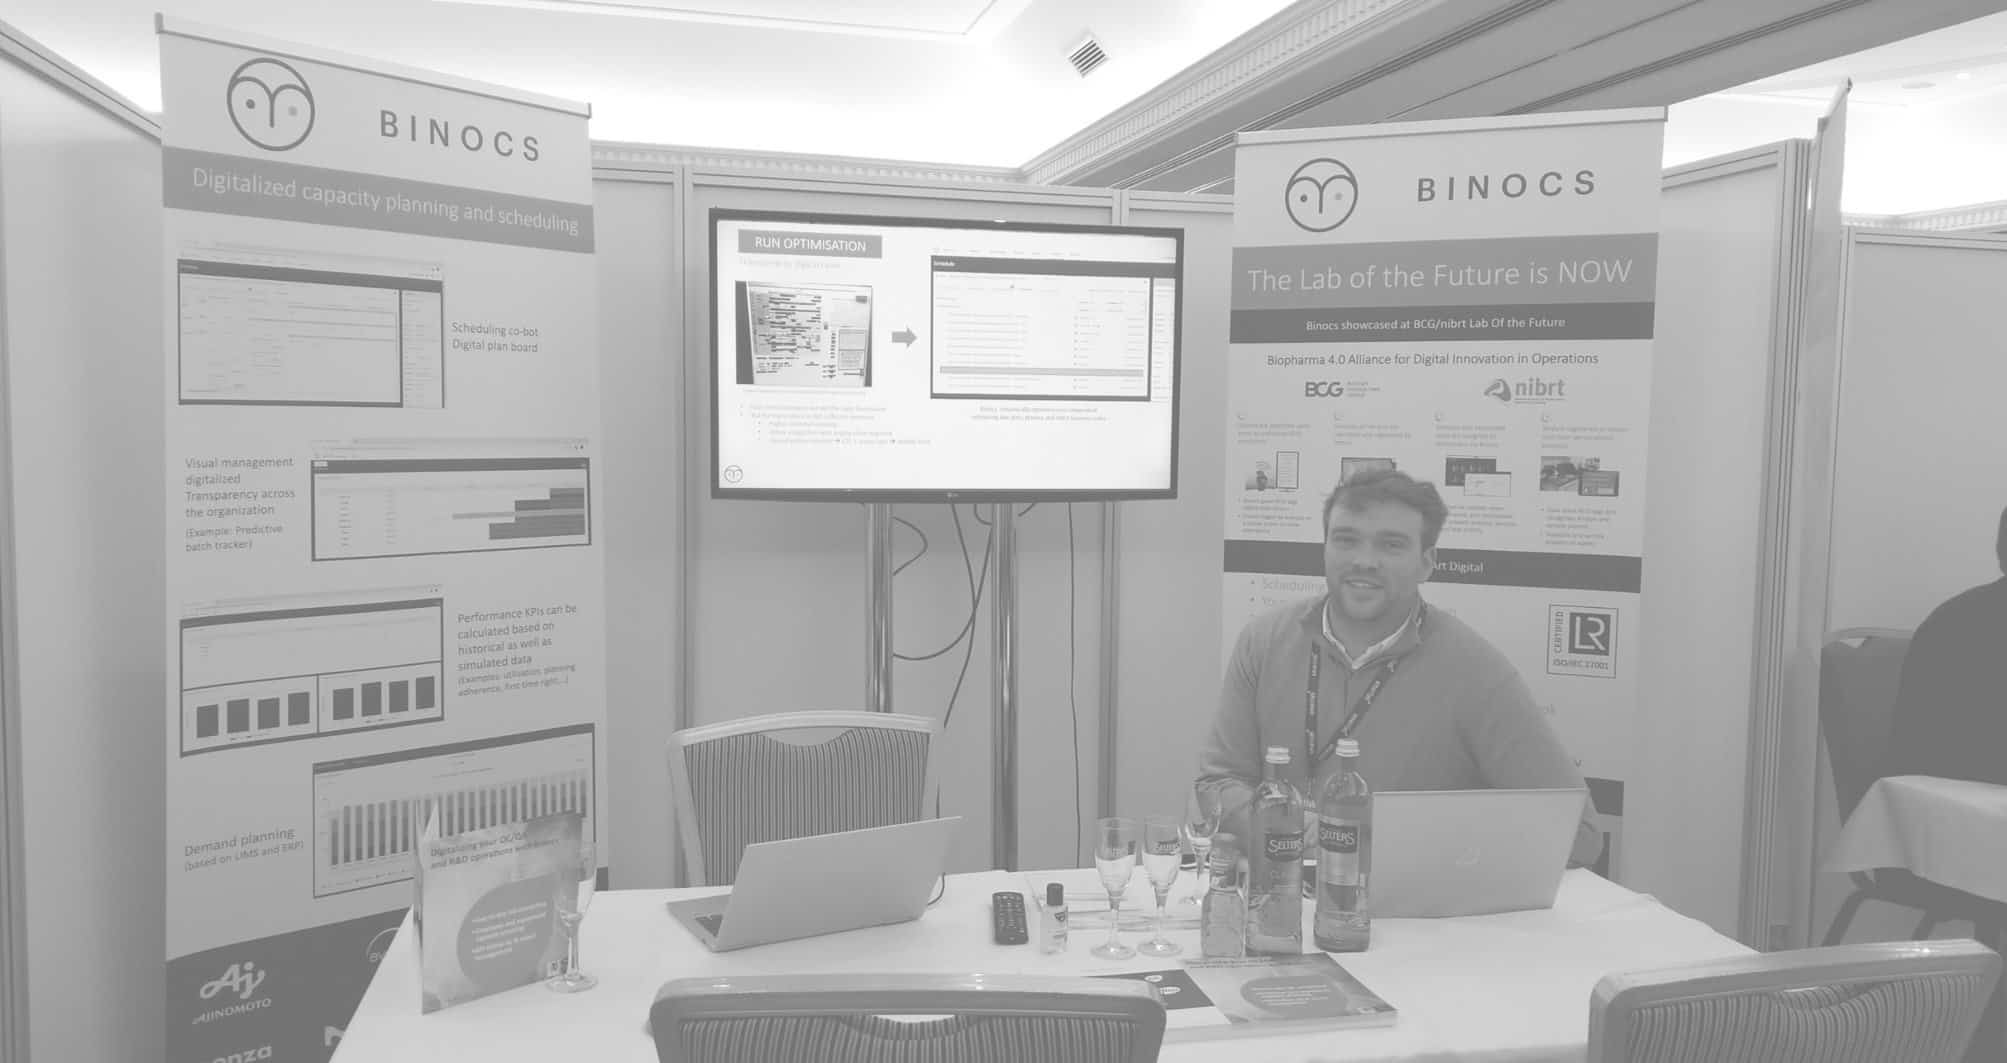 binocs at Smartlab Exchange